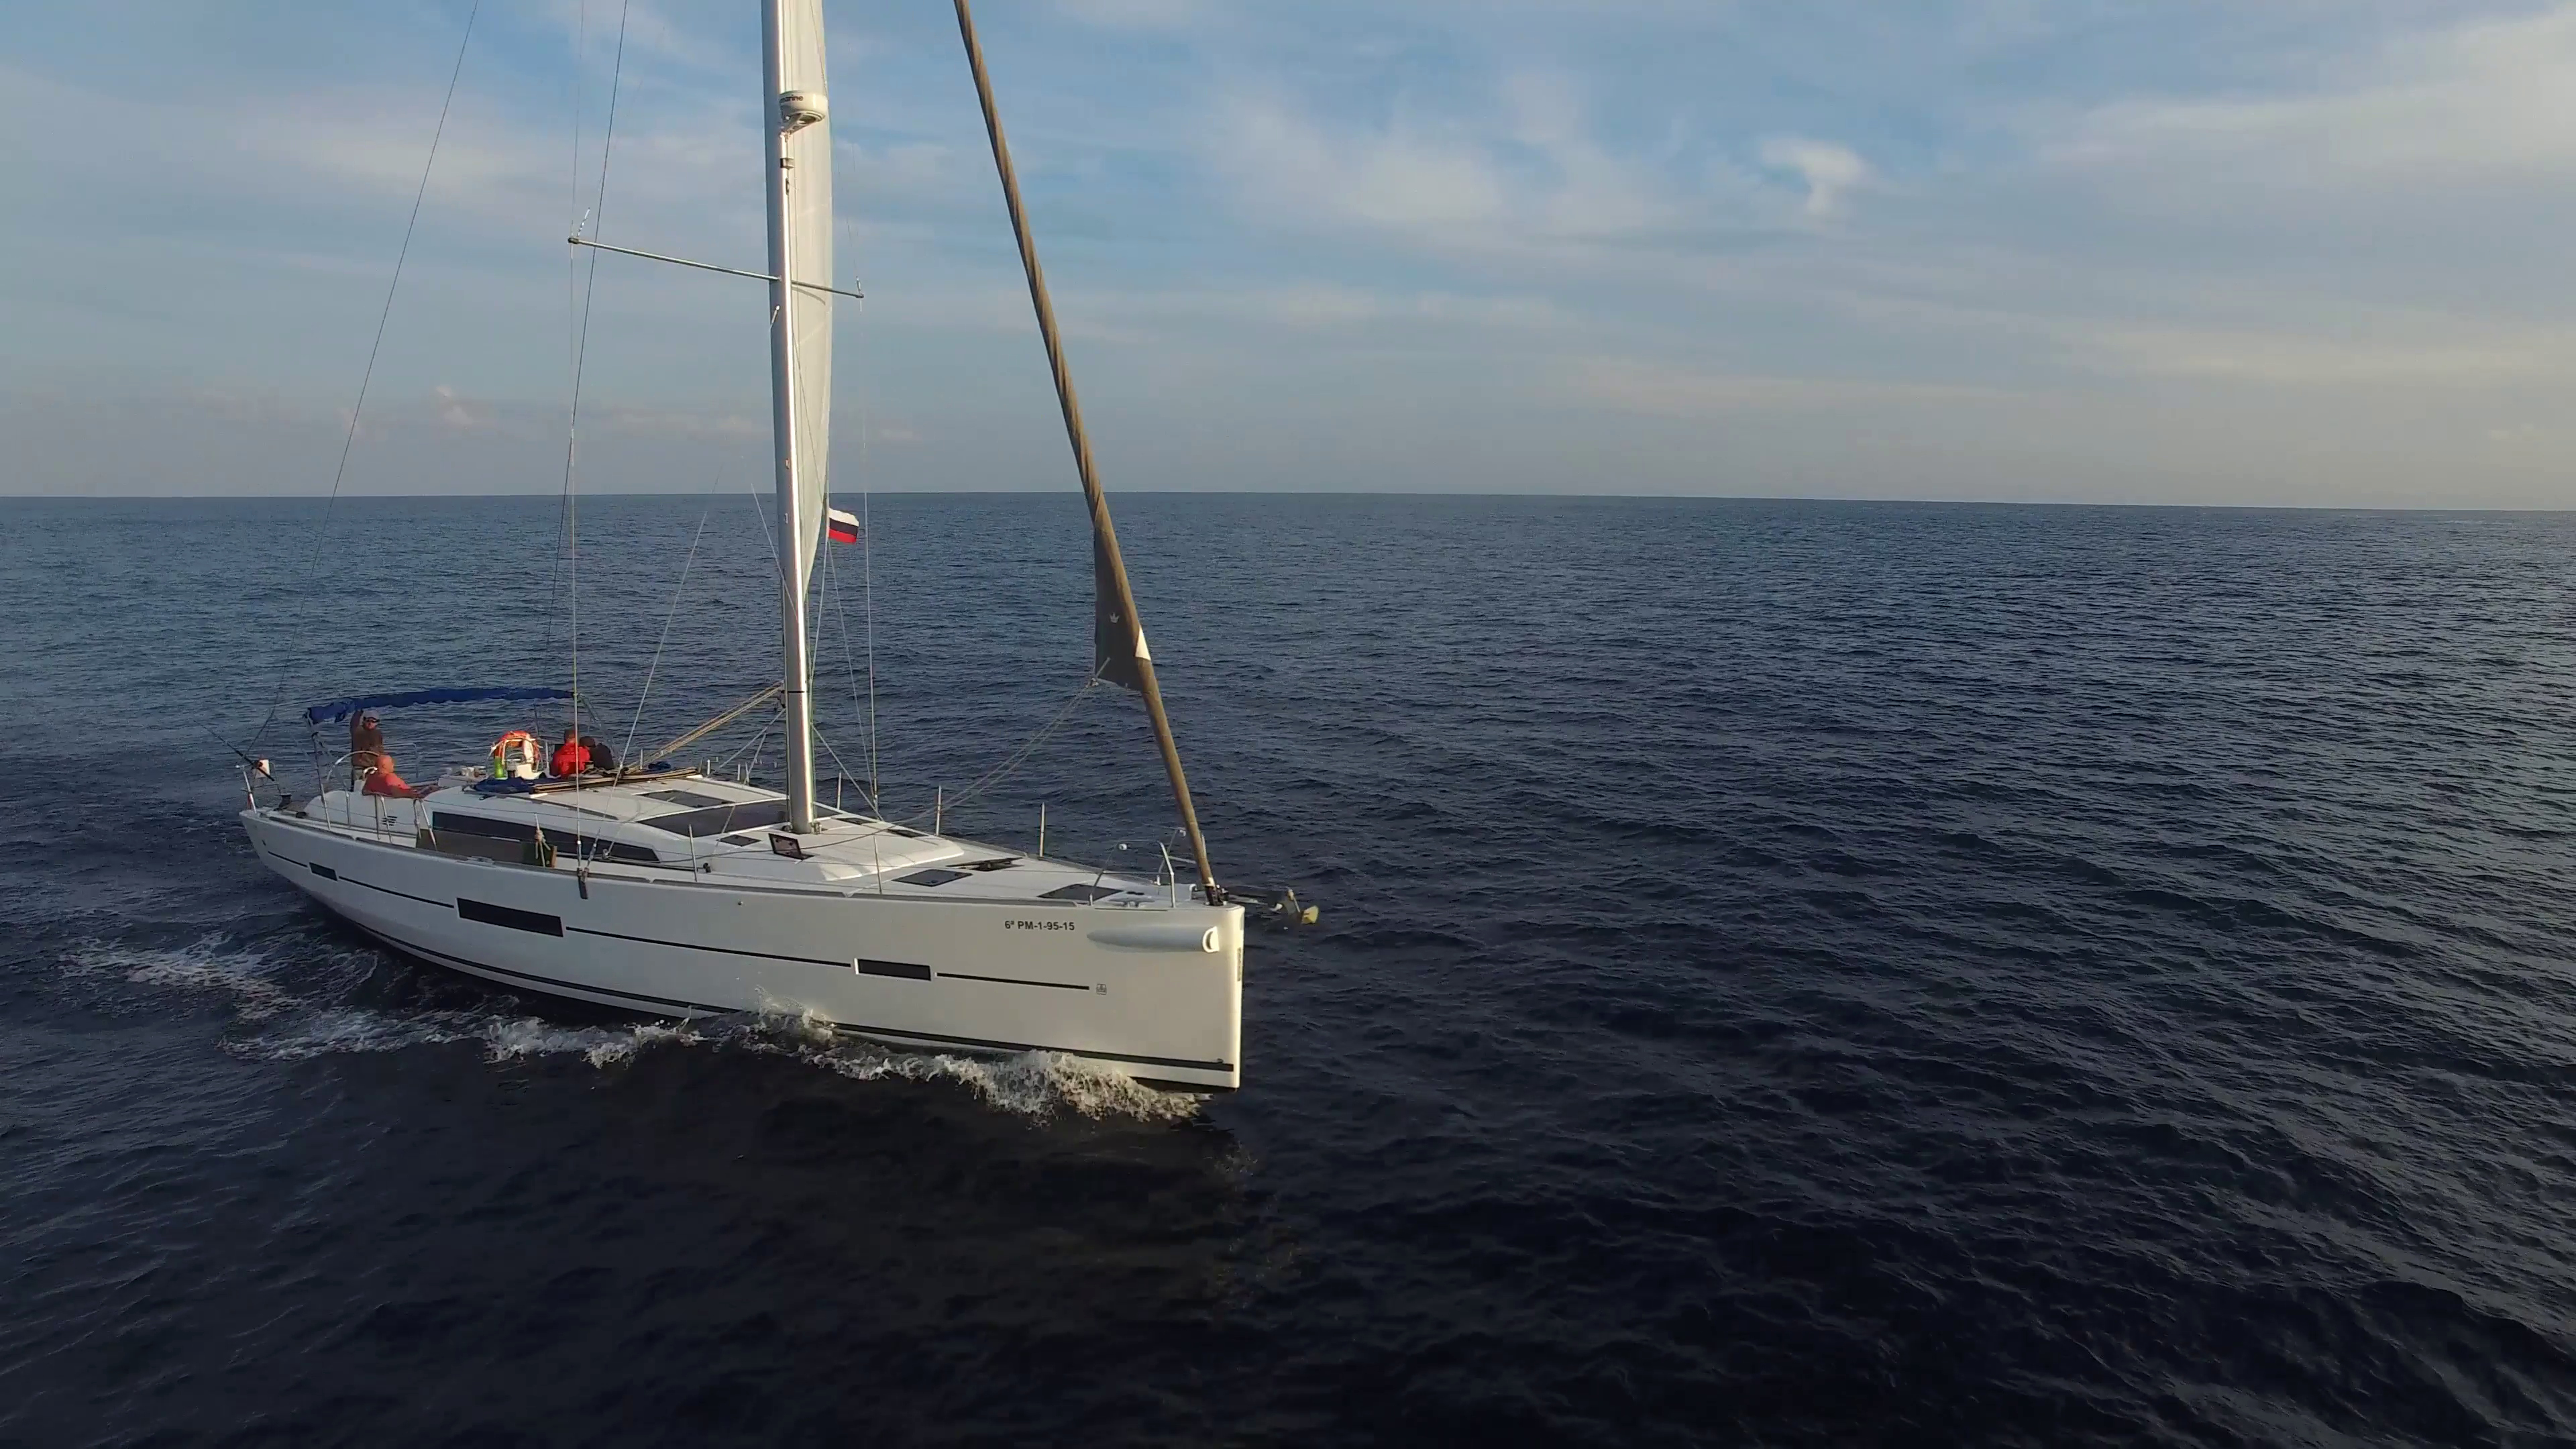 Phantom Stock Agreement Template Lovely Sailing Yacht In the Ocean Aerial View Stock Video